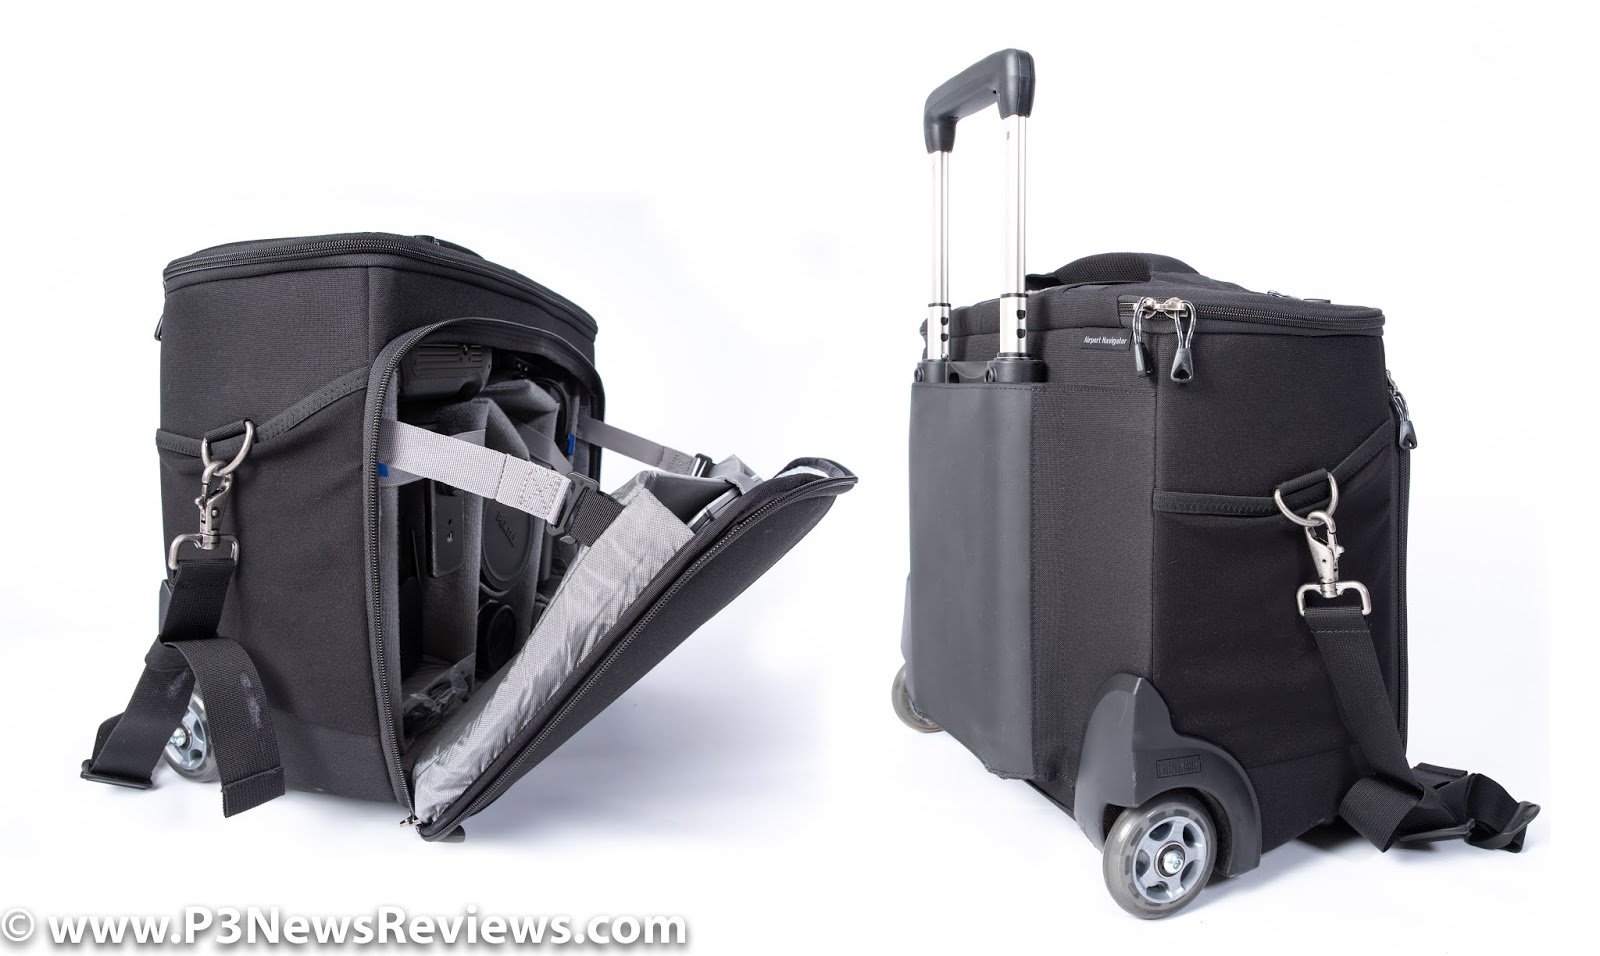 Accessories Bags Trolley Bag Foldable Broncolor P3 News Reviews Hands On With The Think Tank Photo Airport